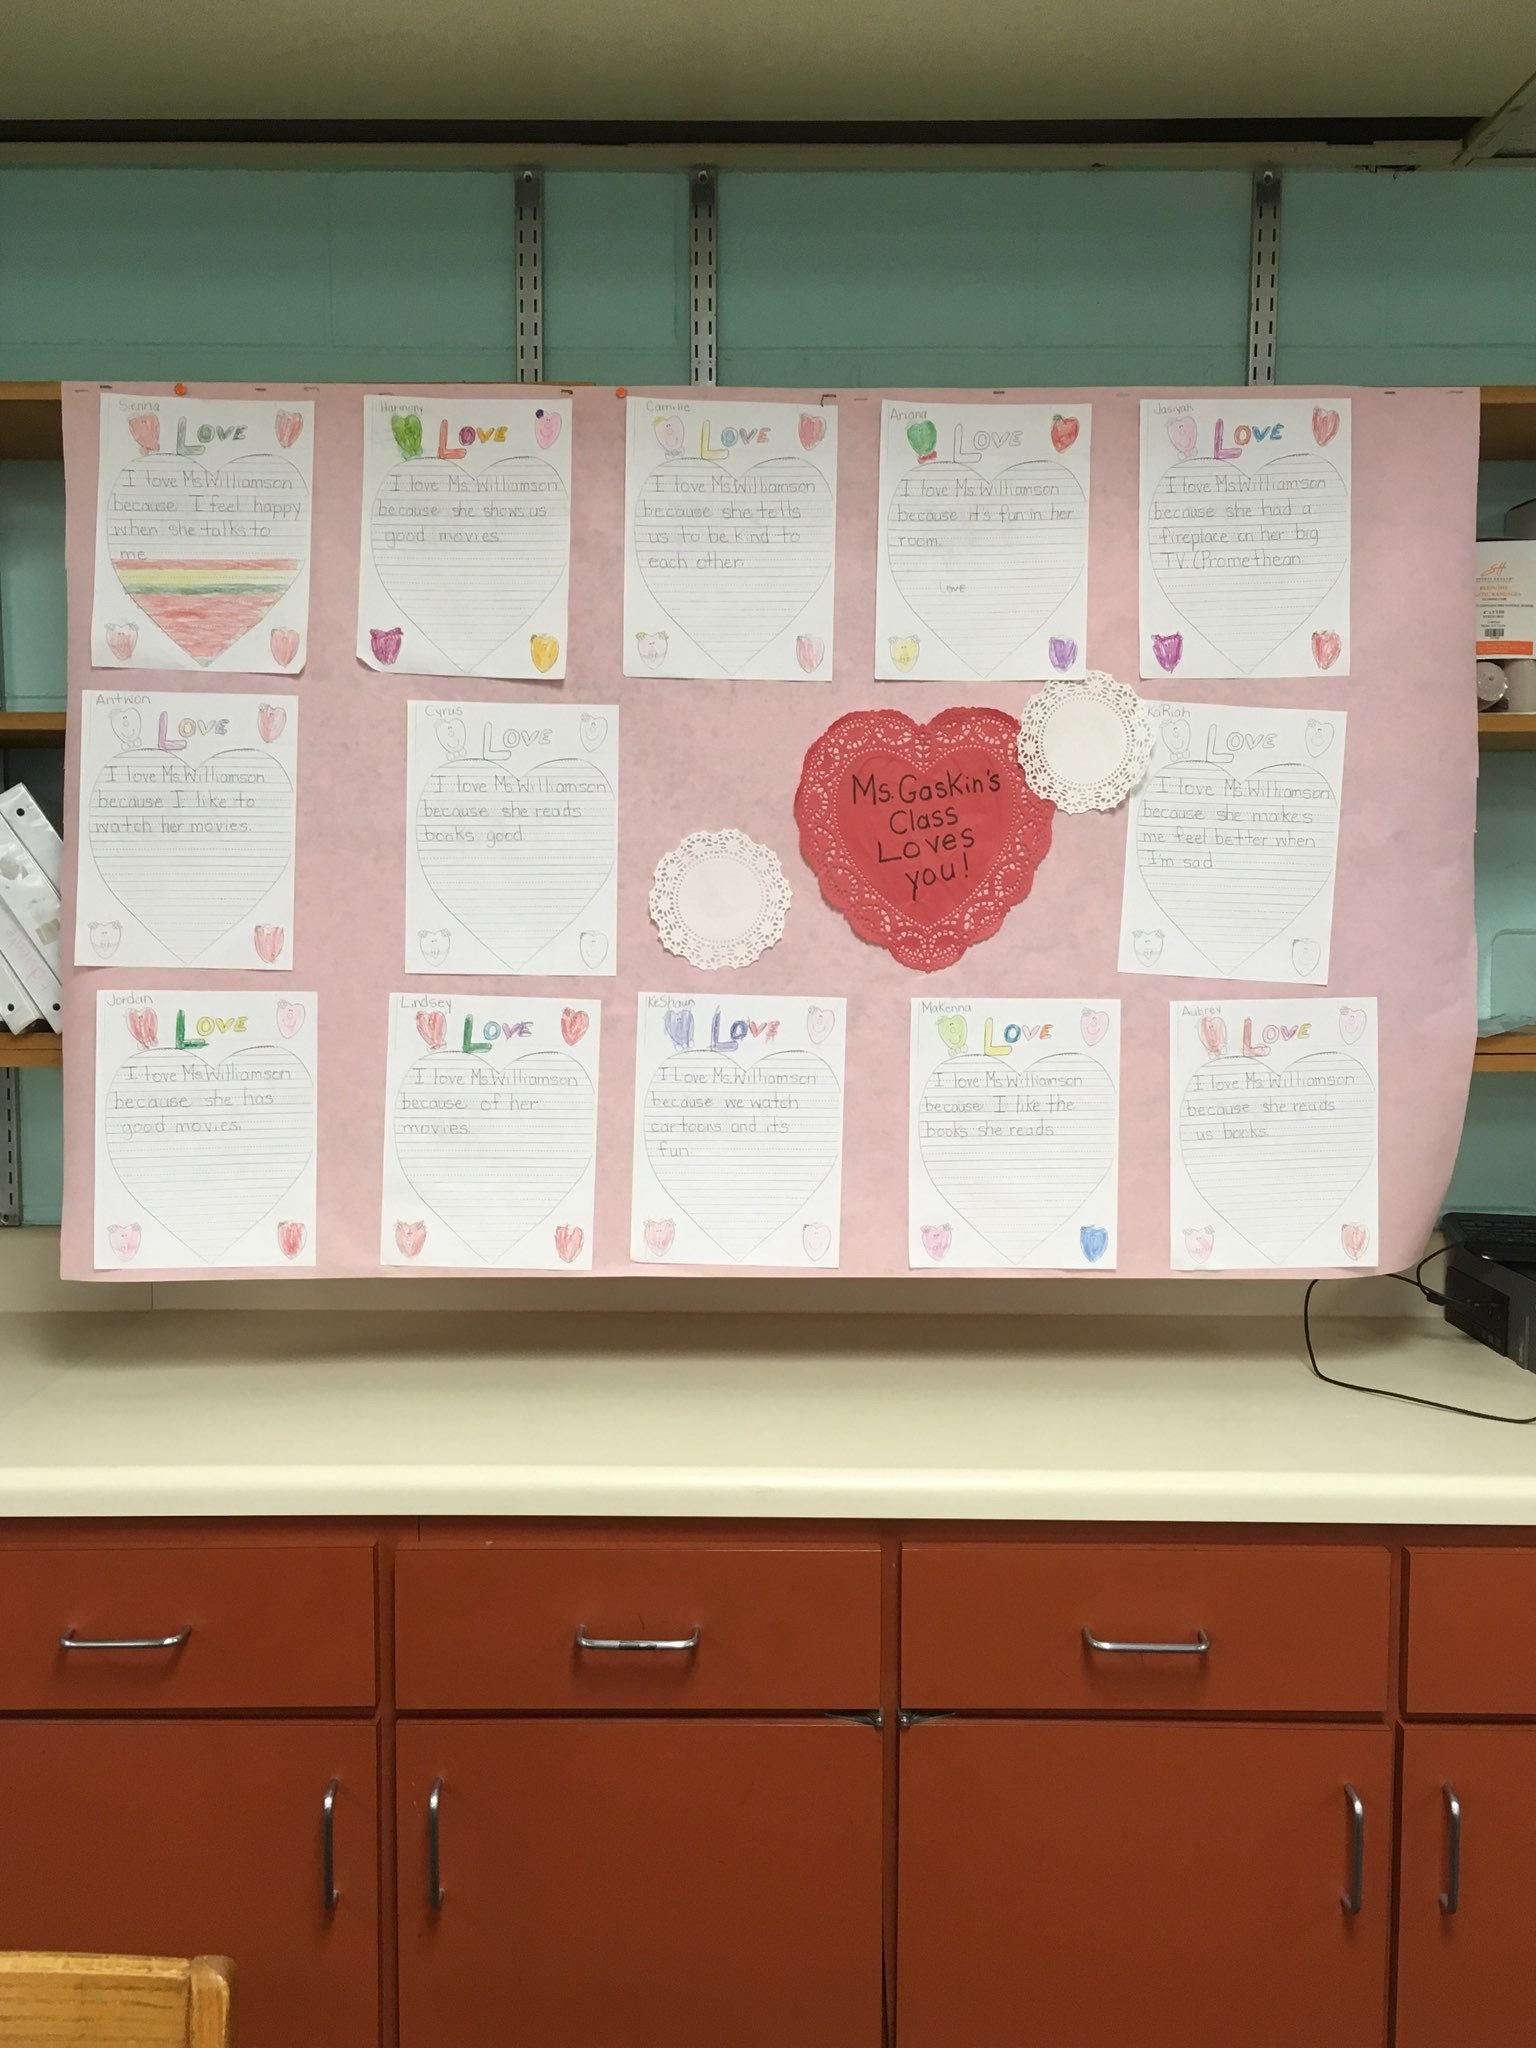 Students write letters of thanks for our counselor